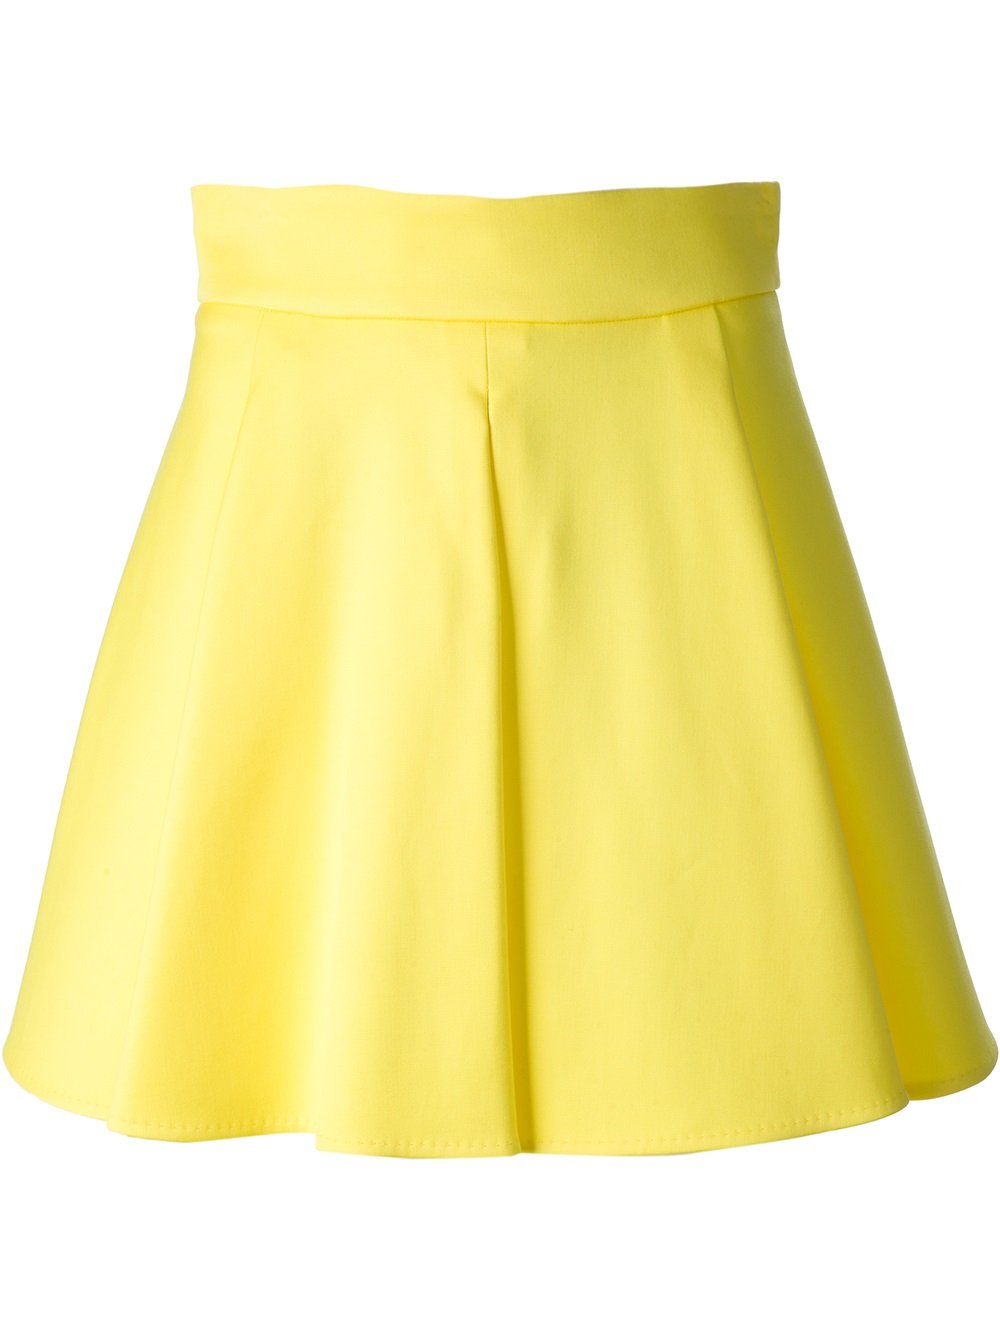 Far fetch Fausto Far Fetch Puglisis San Domenico skirt 10648776_3270086_1000